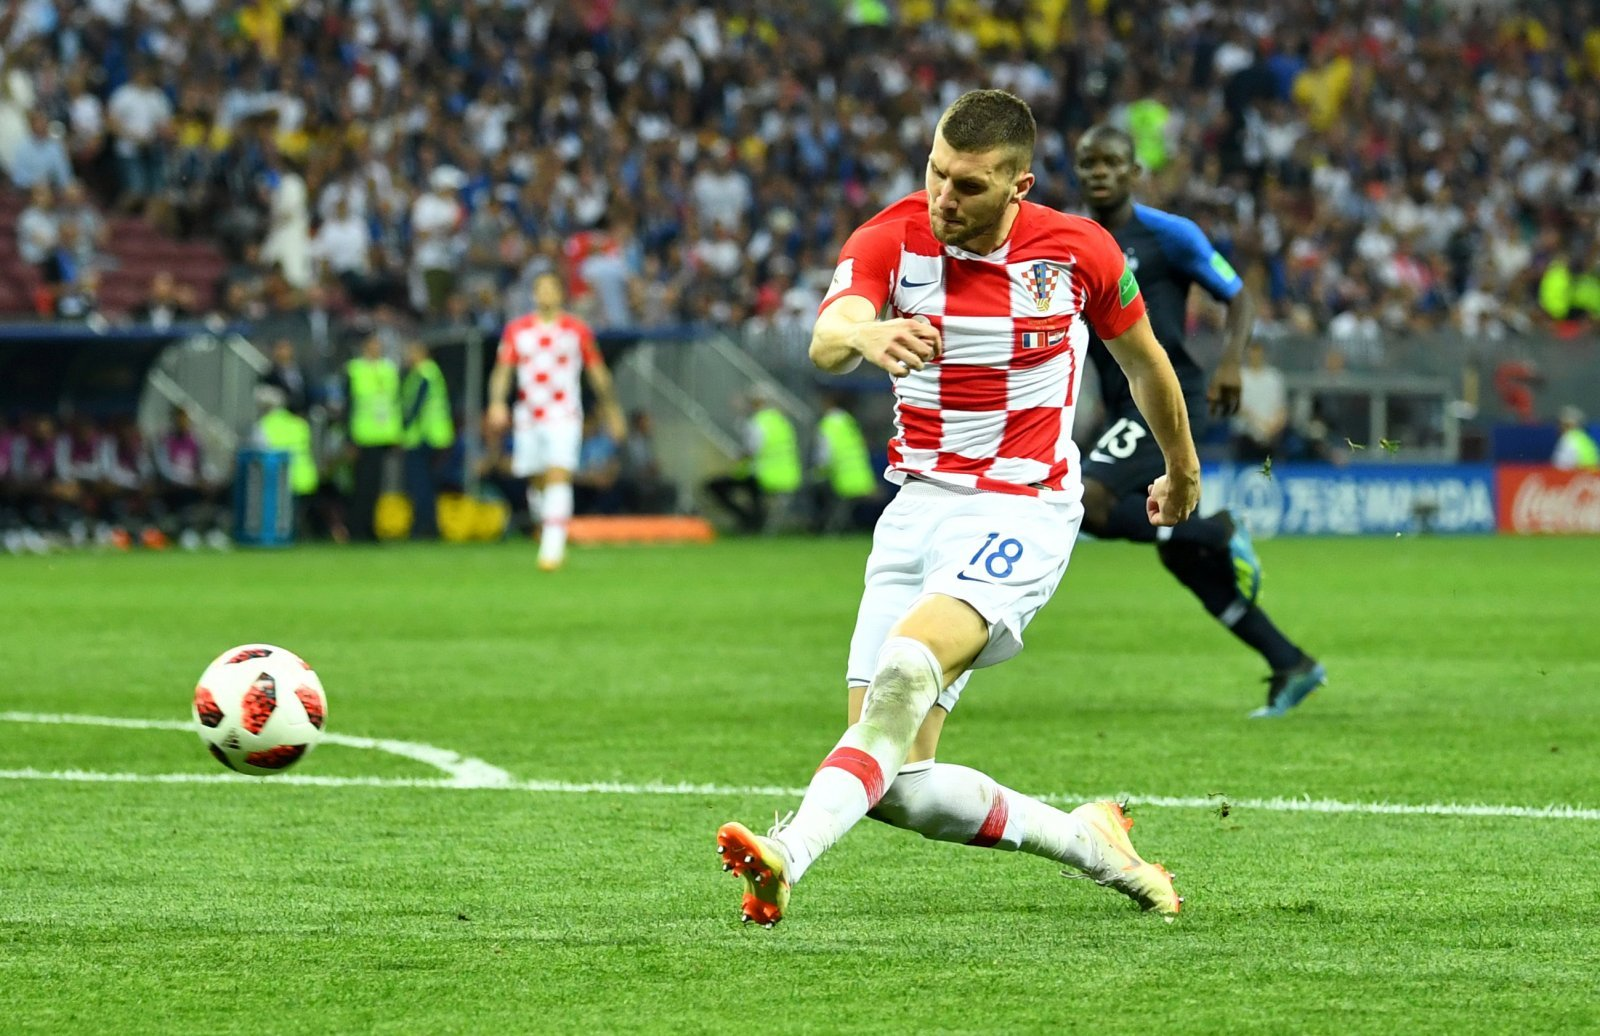 Bayern Munich have given Tottenham an ideal opportunity to sign Ante Rebic